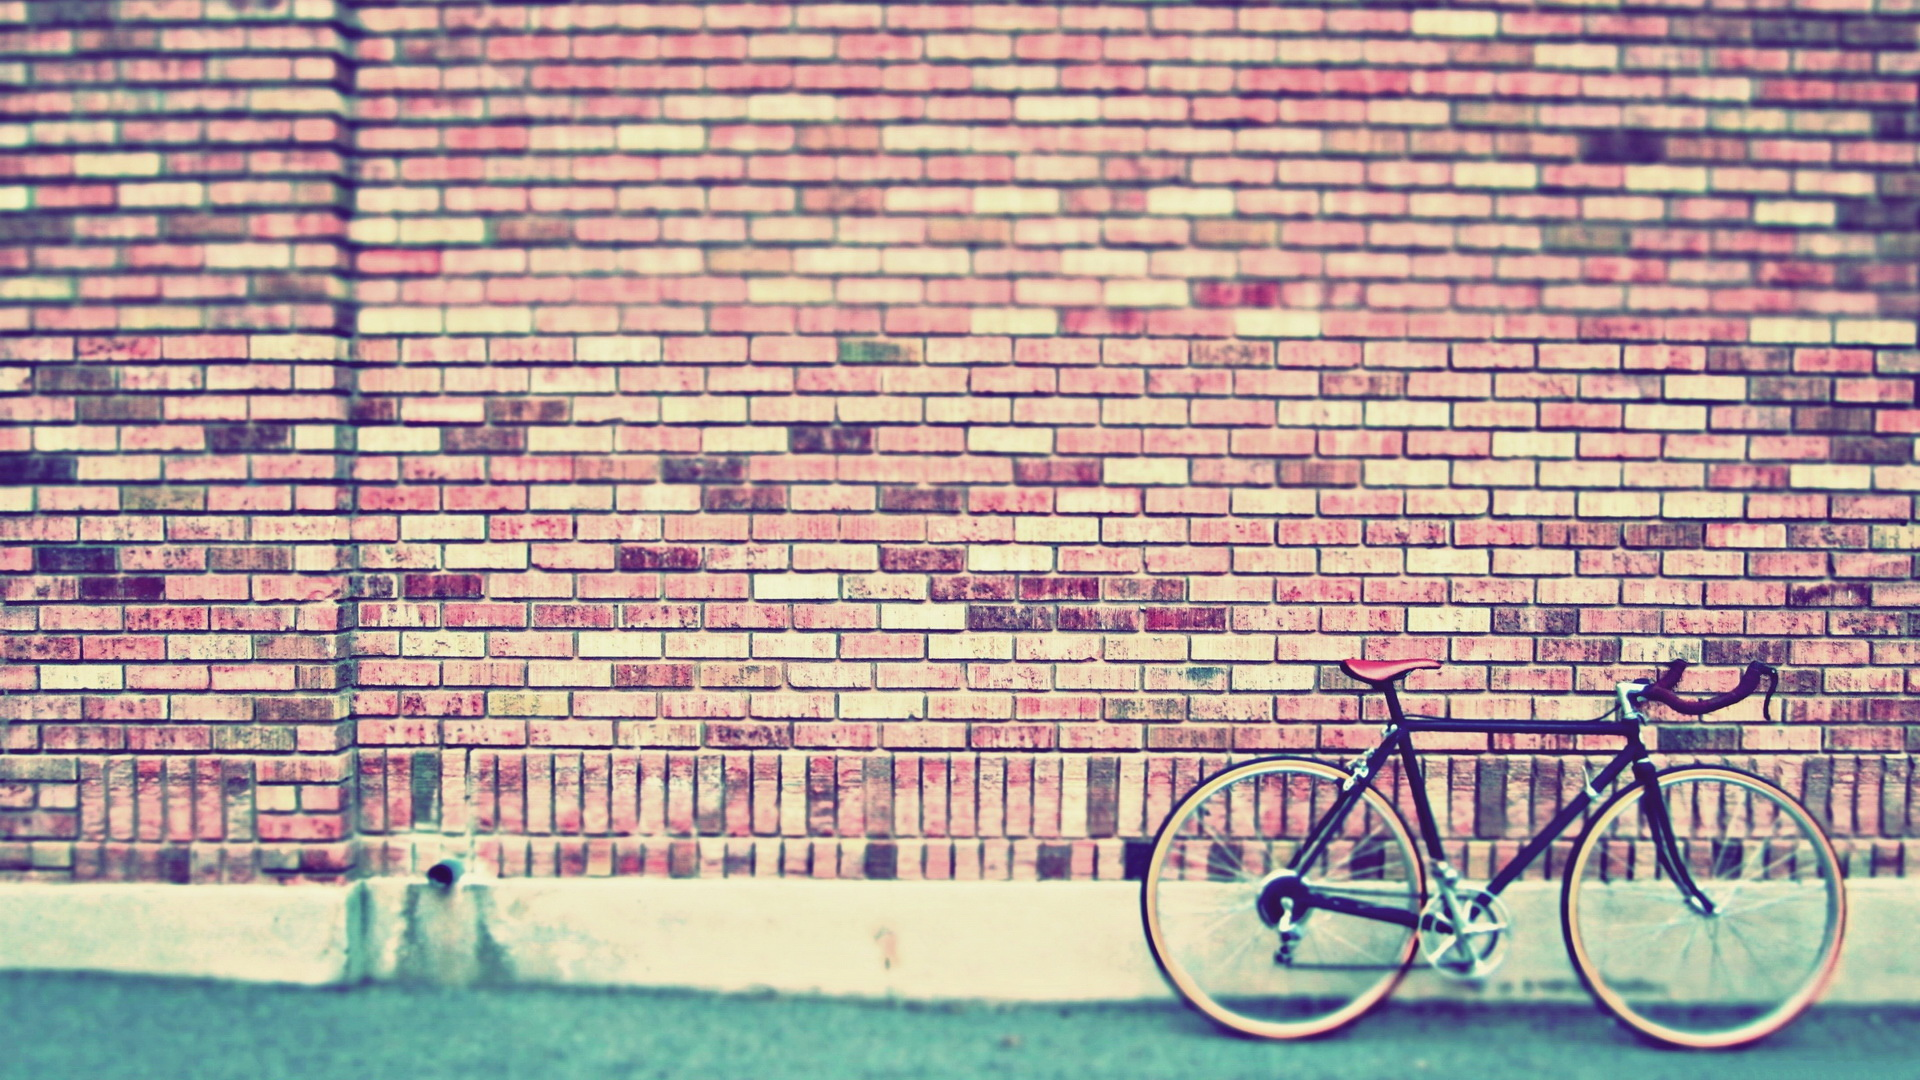 hipster wallpaper tumblr